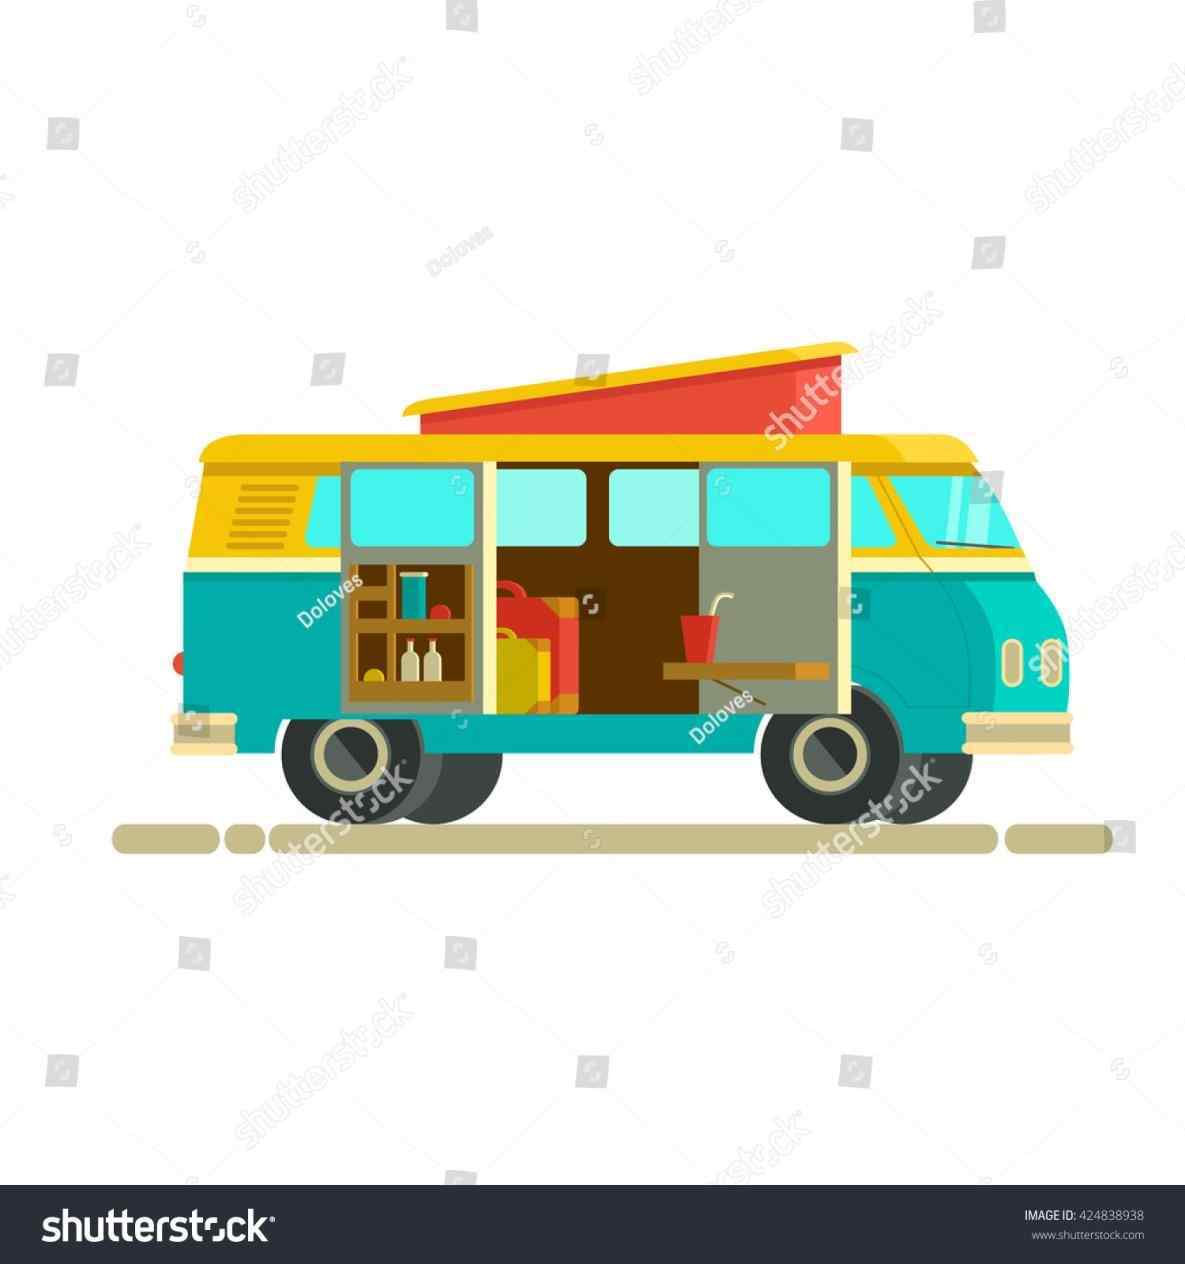 Camper clipart old fashioned. Pinterest airstreamrhpinterestcom image retro